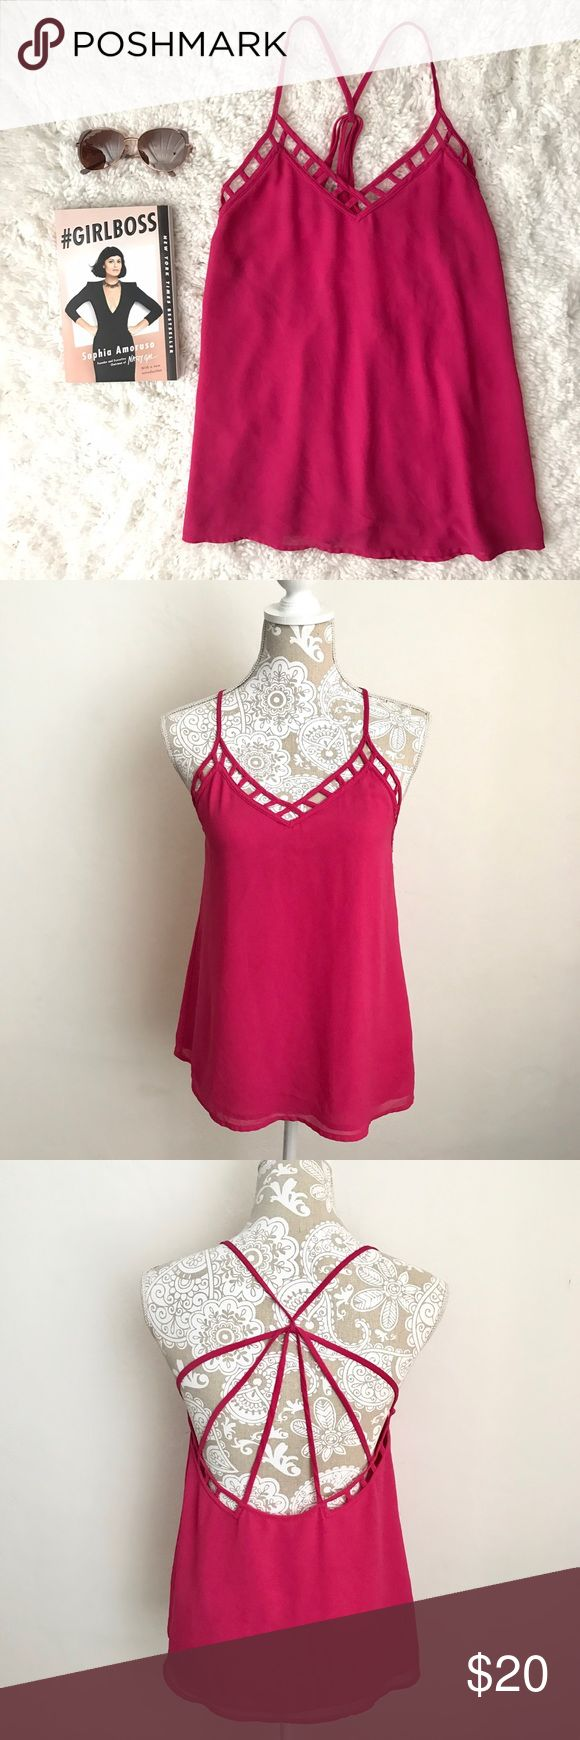 Hot Pink Strappy Top💖 Perfect top for summer! This hot pink top with a sexy strappy back can be dressed up or down! Wear with a cute lace bralette under for a casual chic look💕 Adjustable straps V-neck front Open back  Fits true to size Tops Blouses